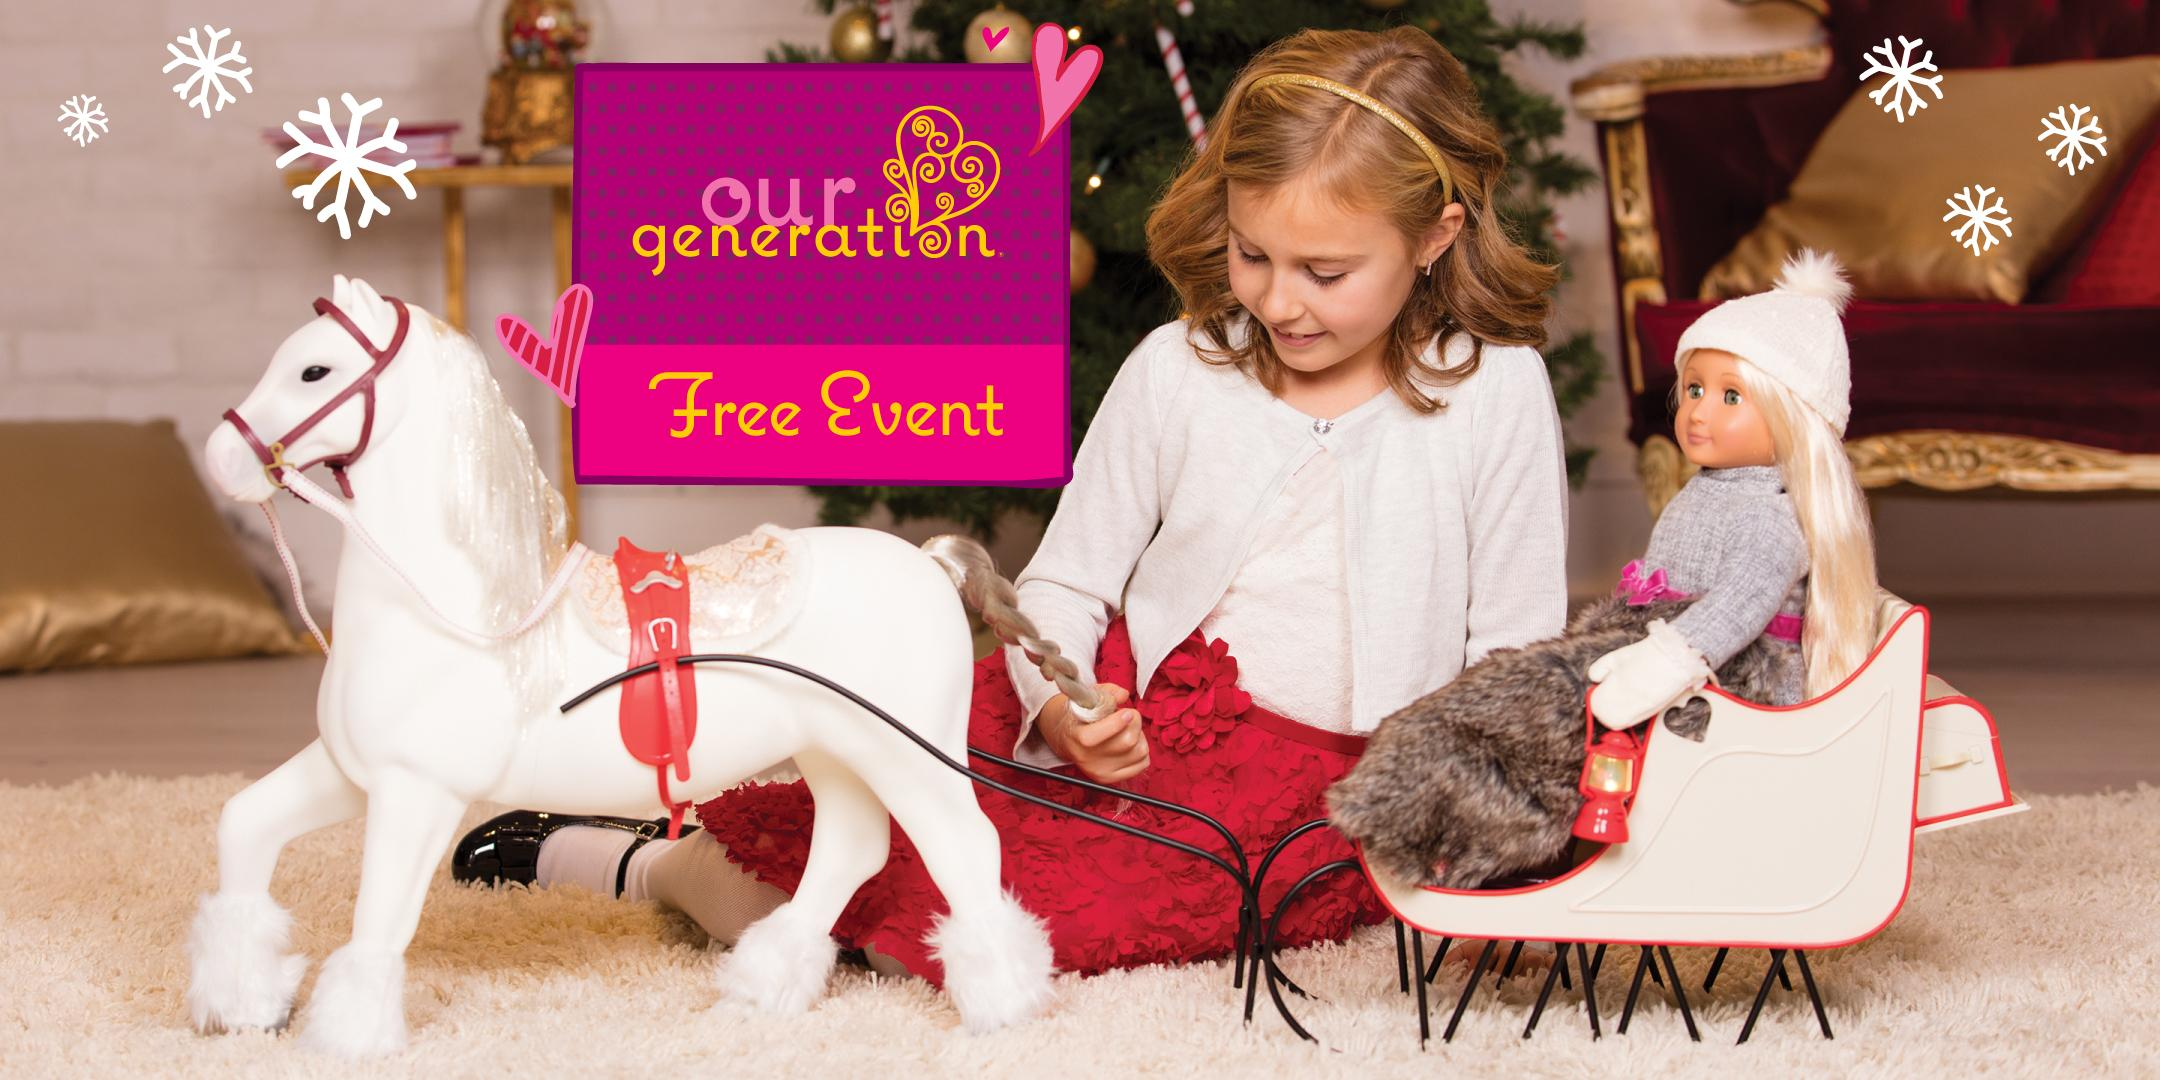 Free Holiday Event for Kids - Target San Antonio (HWY281), TX